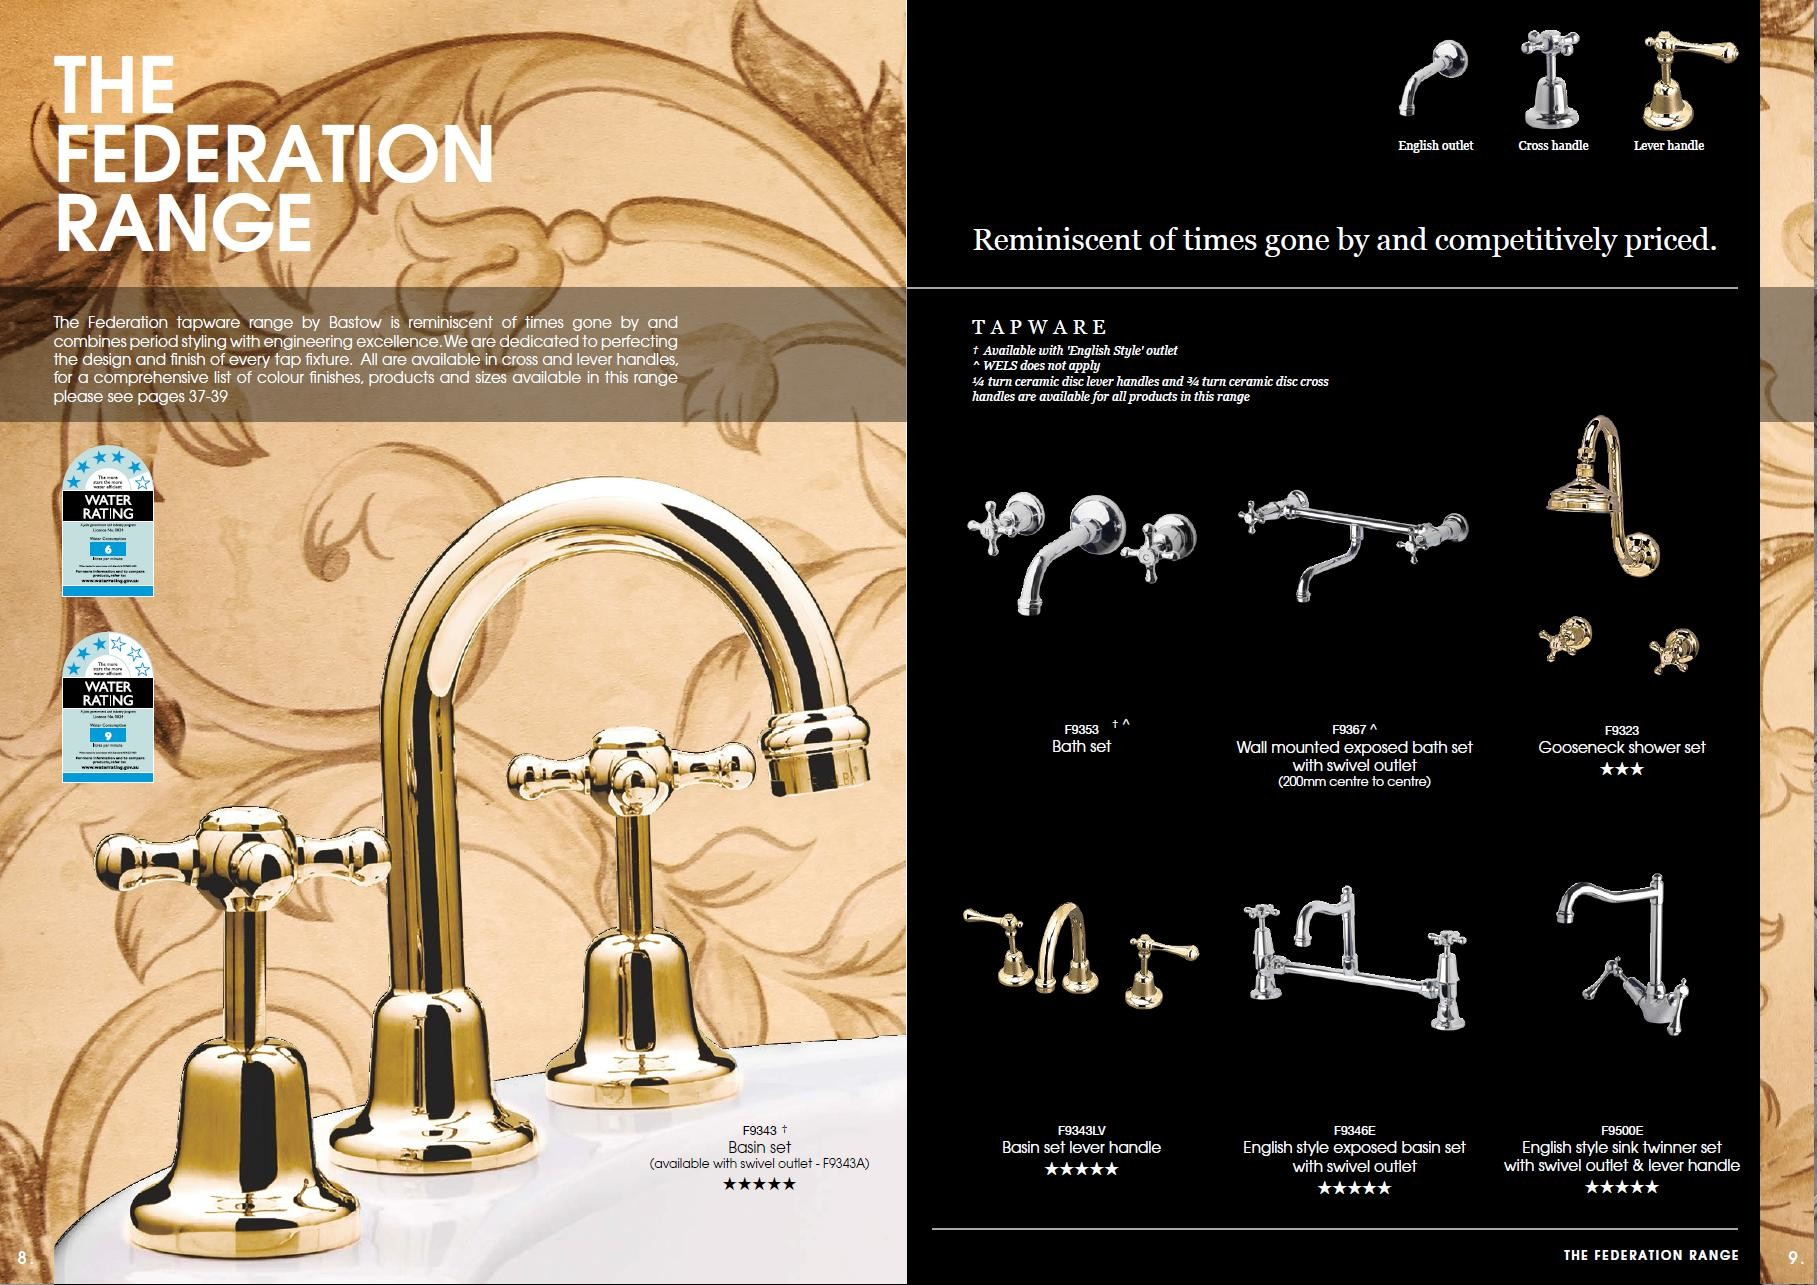 Retro Vintage Heritage Federation Style Showers Including